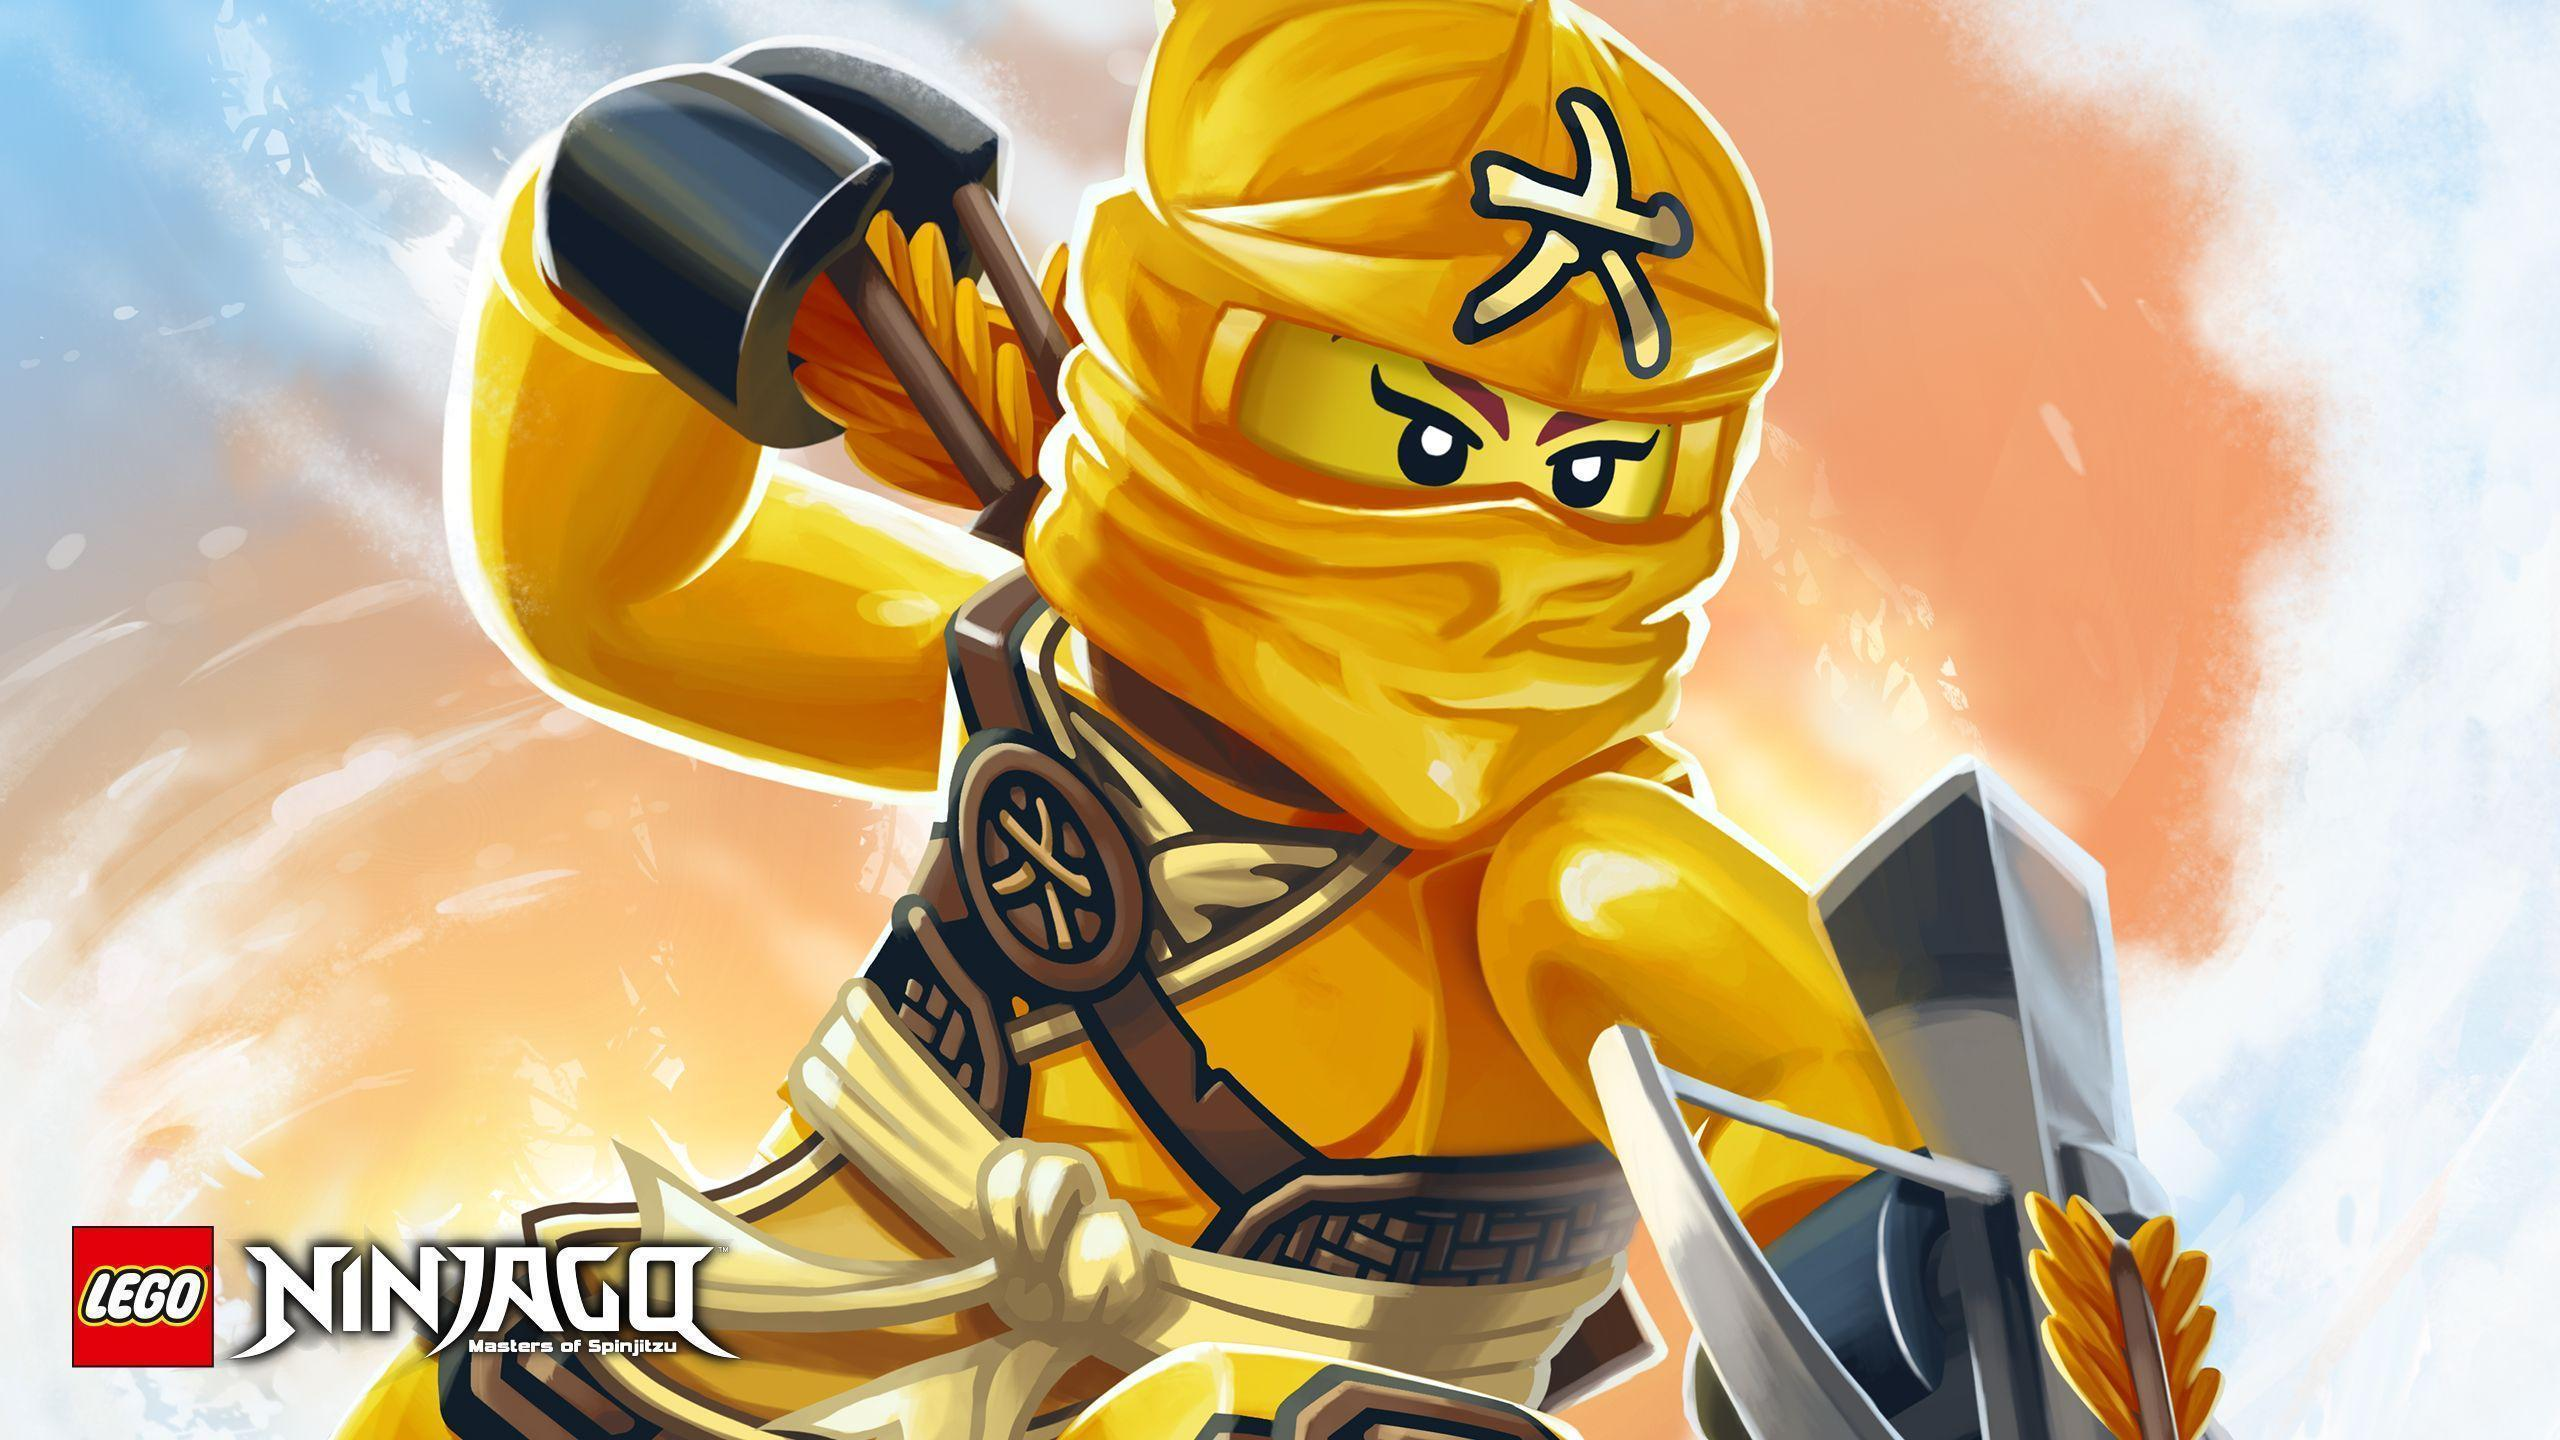 lego ninjago wallpaper high - photo #22